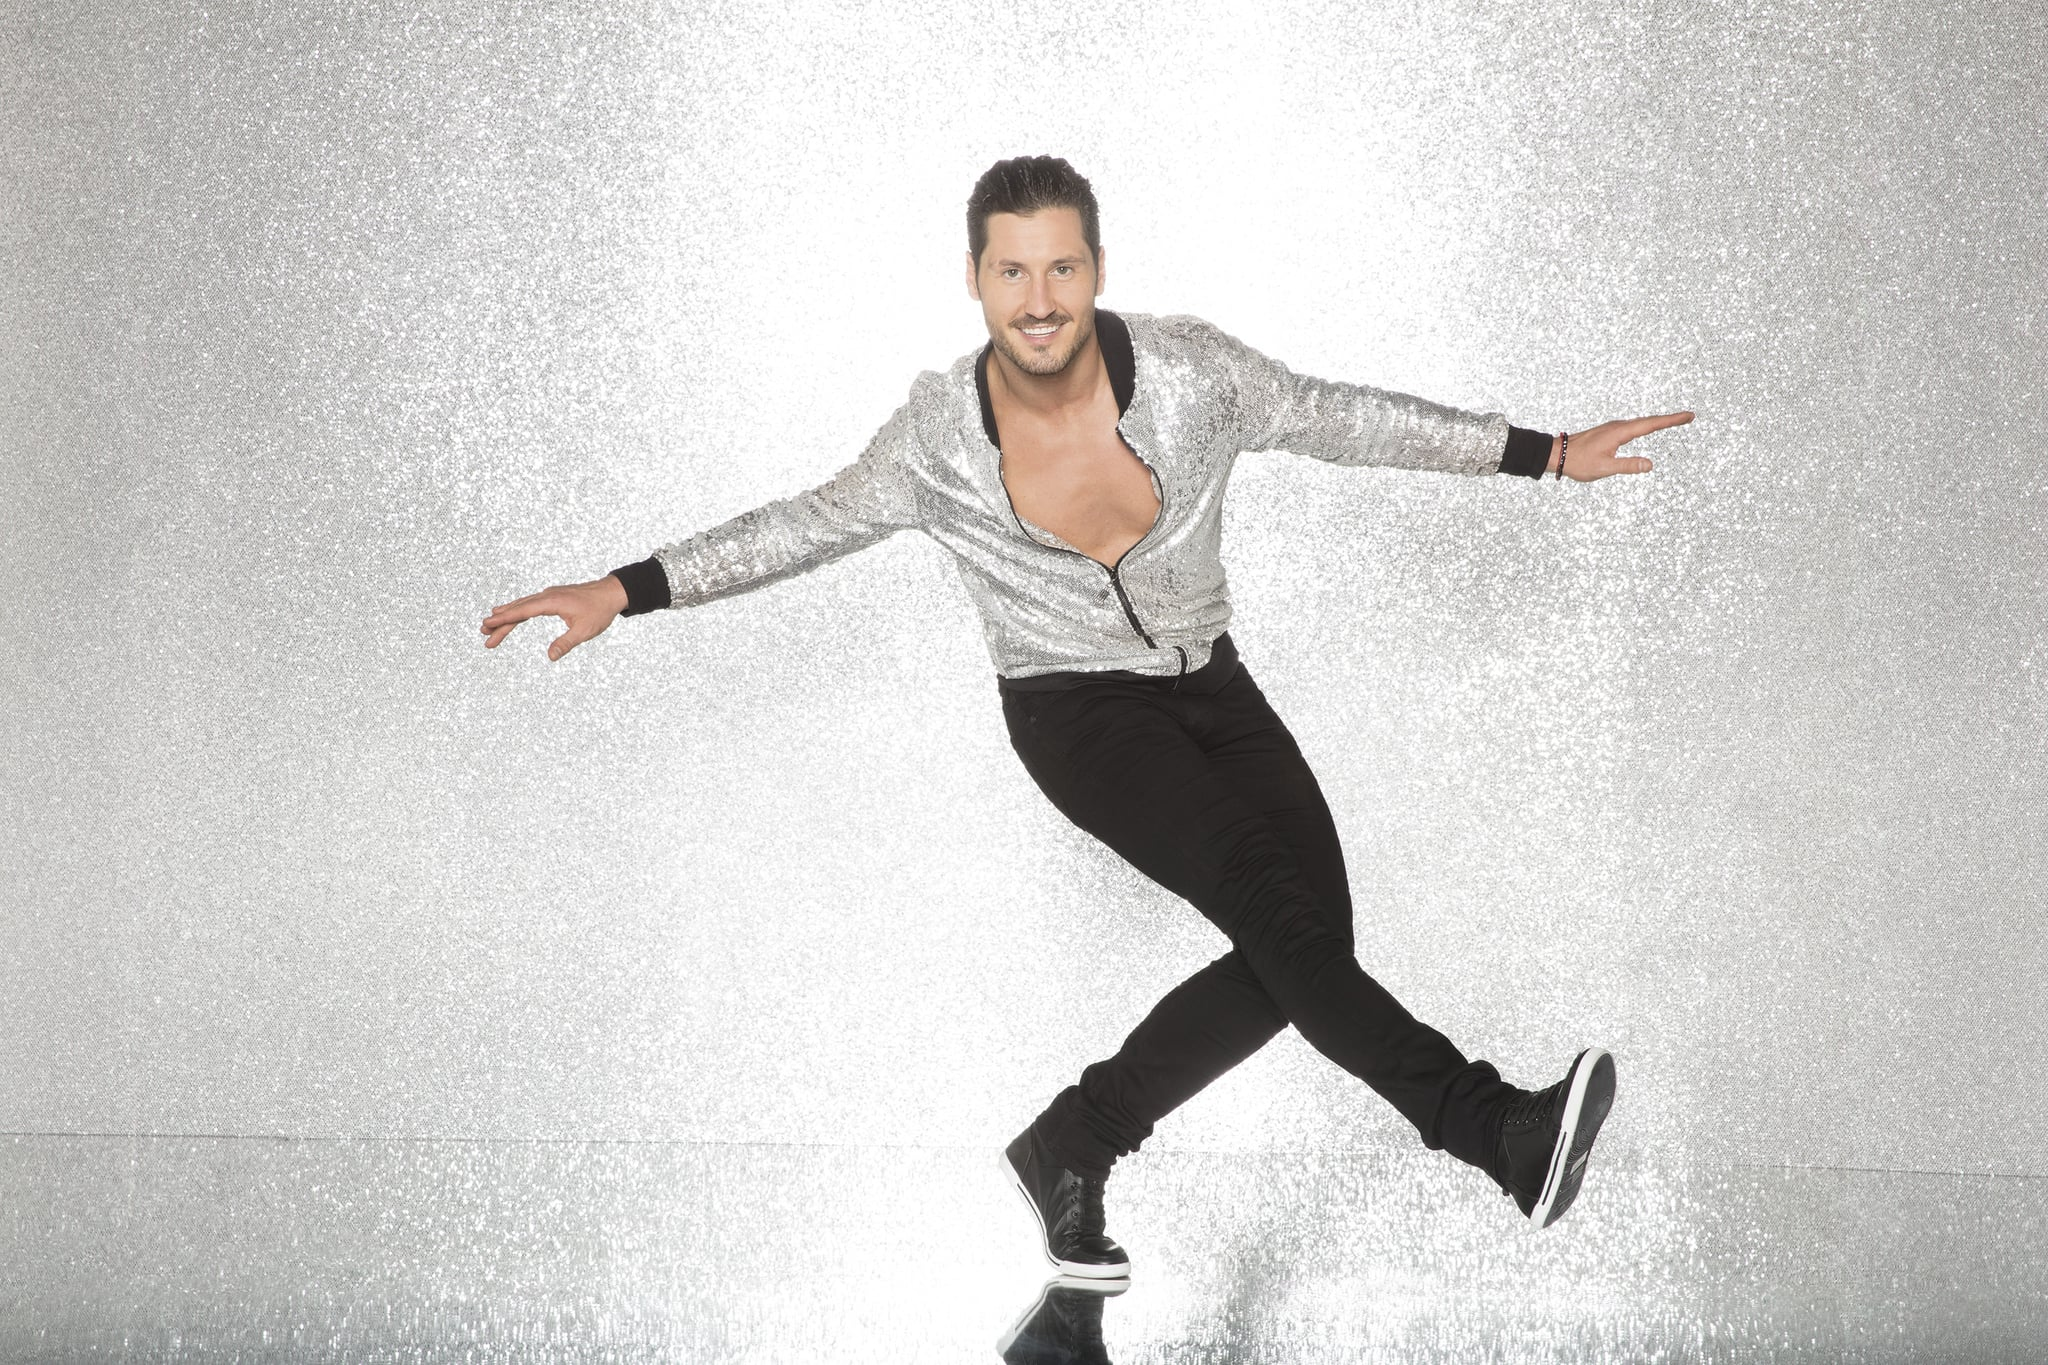 DANCING WITH THE STARS - VALENTIN CHMERKOVSKIY - The celebrity cast of